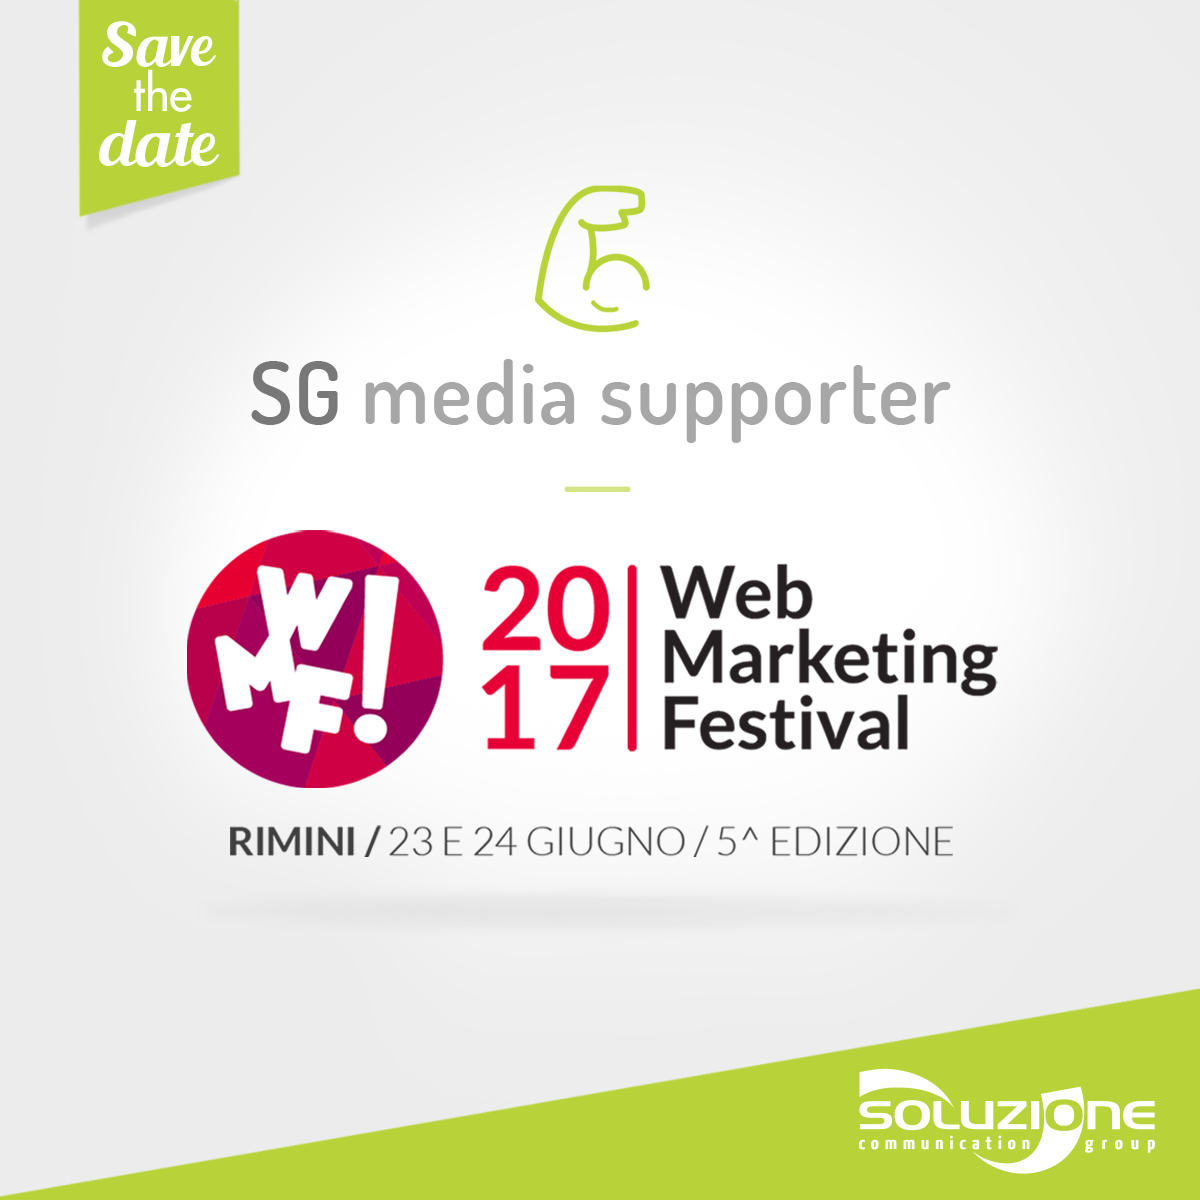 Soluzione Group is Media Supporter of the Web Marketing Festival 2017